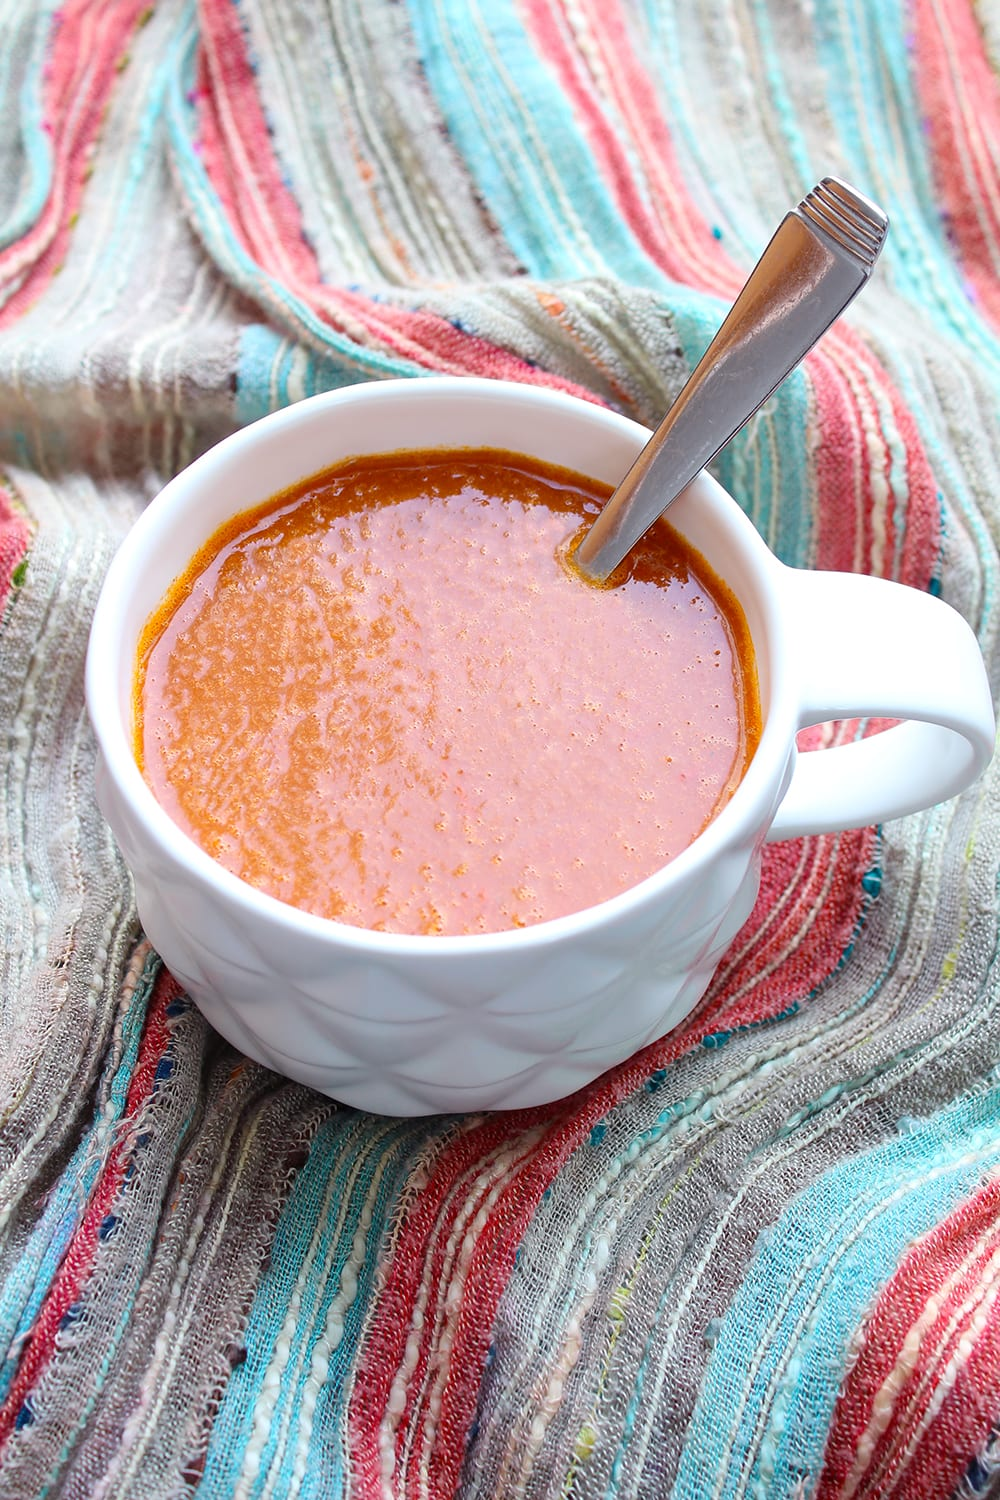 This basic tomato soup recipe is a great base for other soups. Try adding black beans, onions, peppers, corn and cumin to turn it into a Southwest style soup. You can also add plain rice or macaroni to make it a bit heartier!